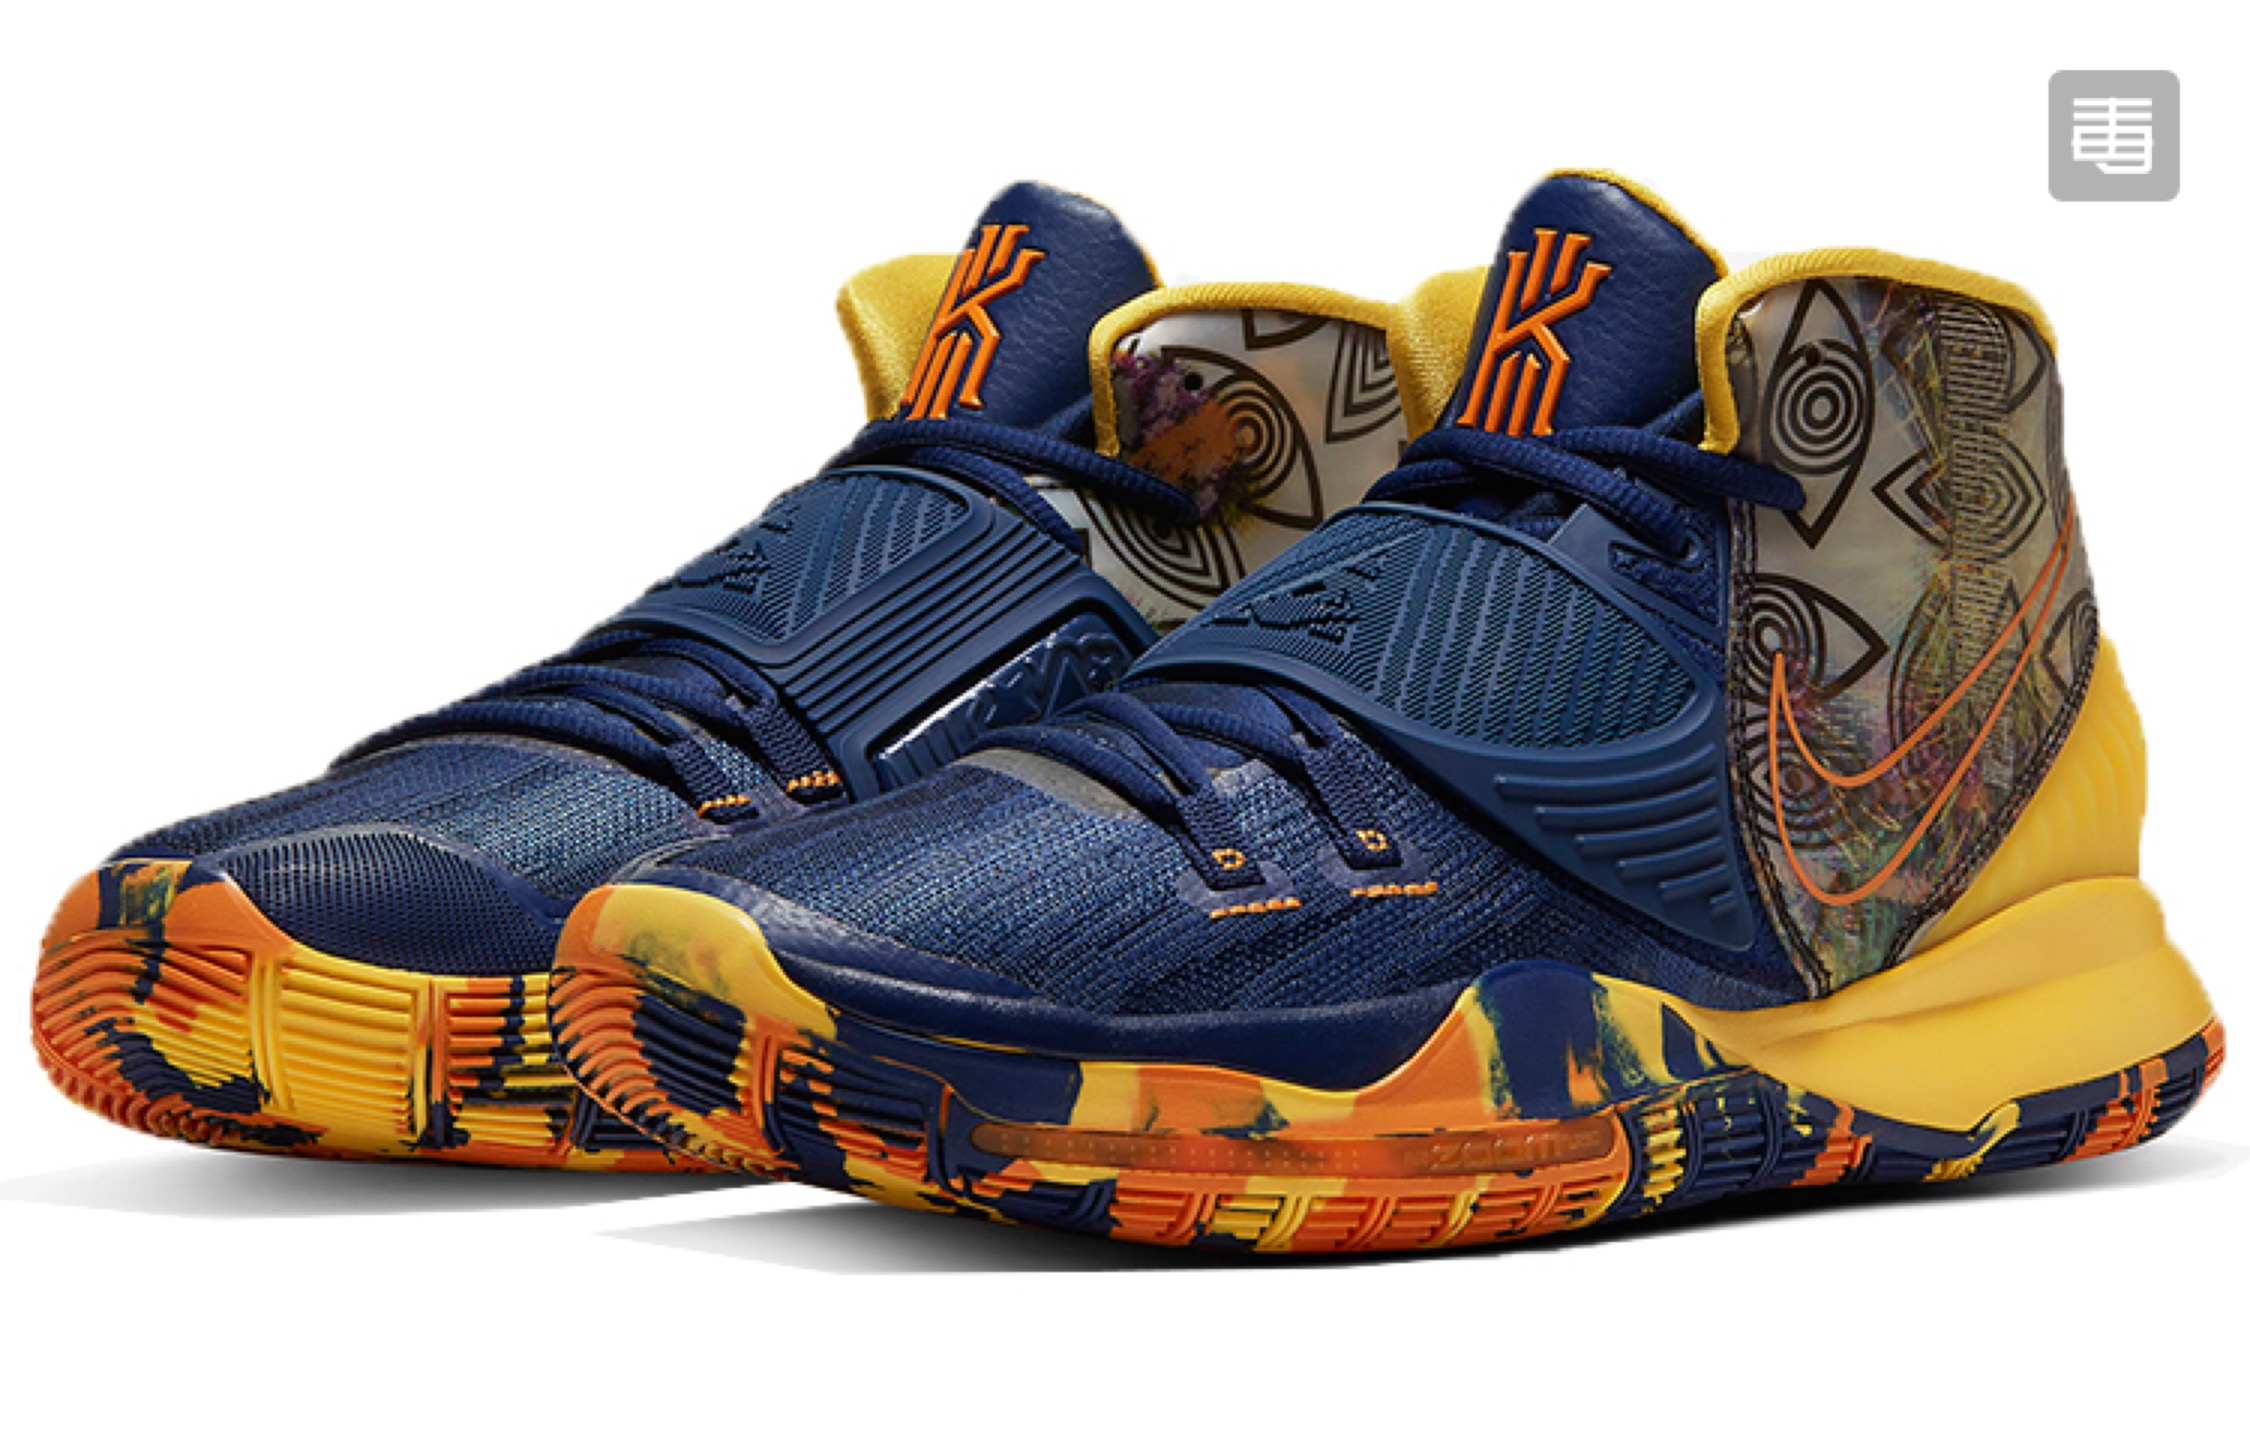 Nike Kyrie 6 TaiBei Navy Blue Yellow Shoes